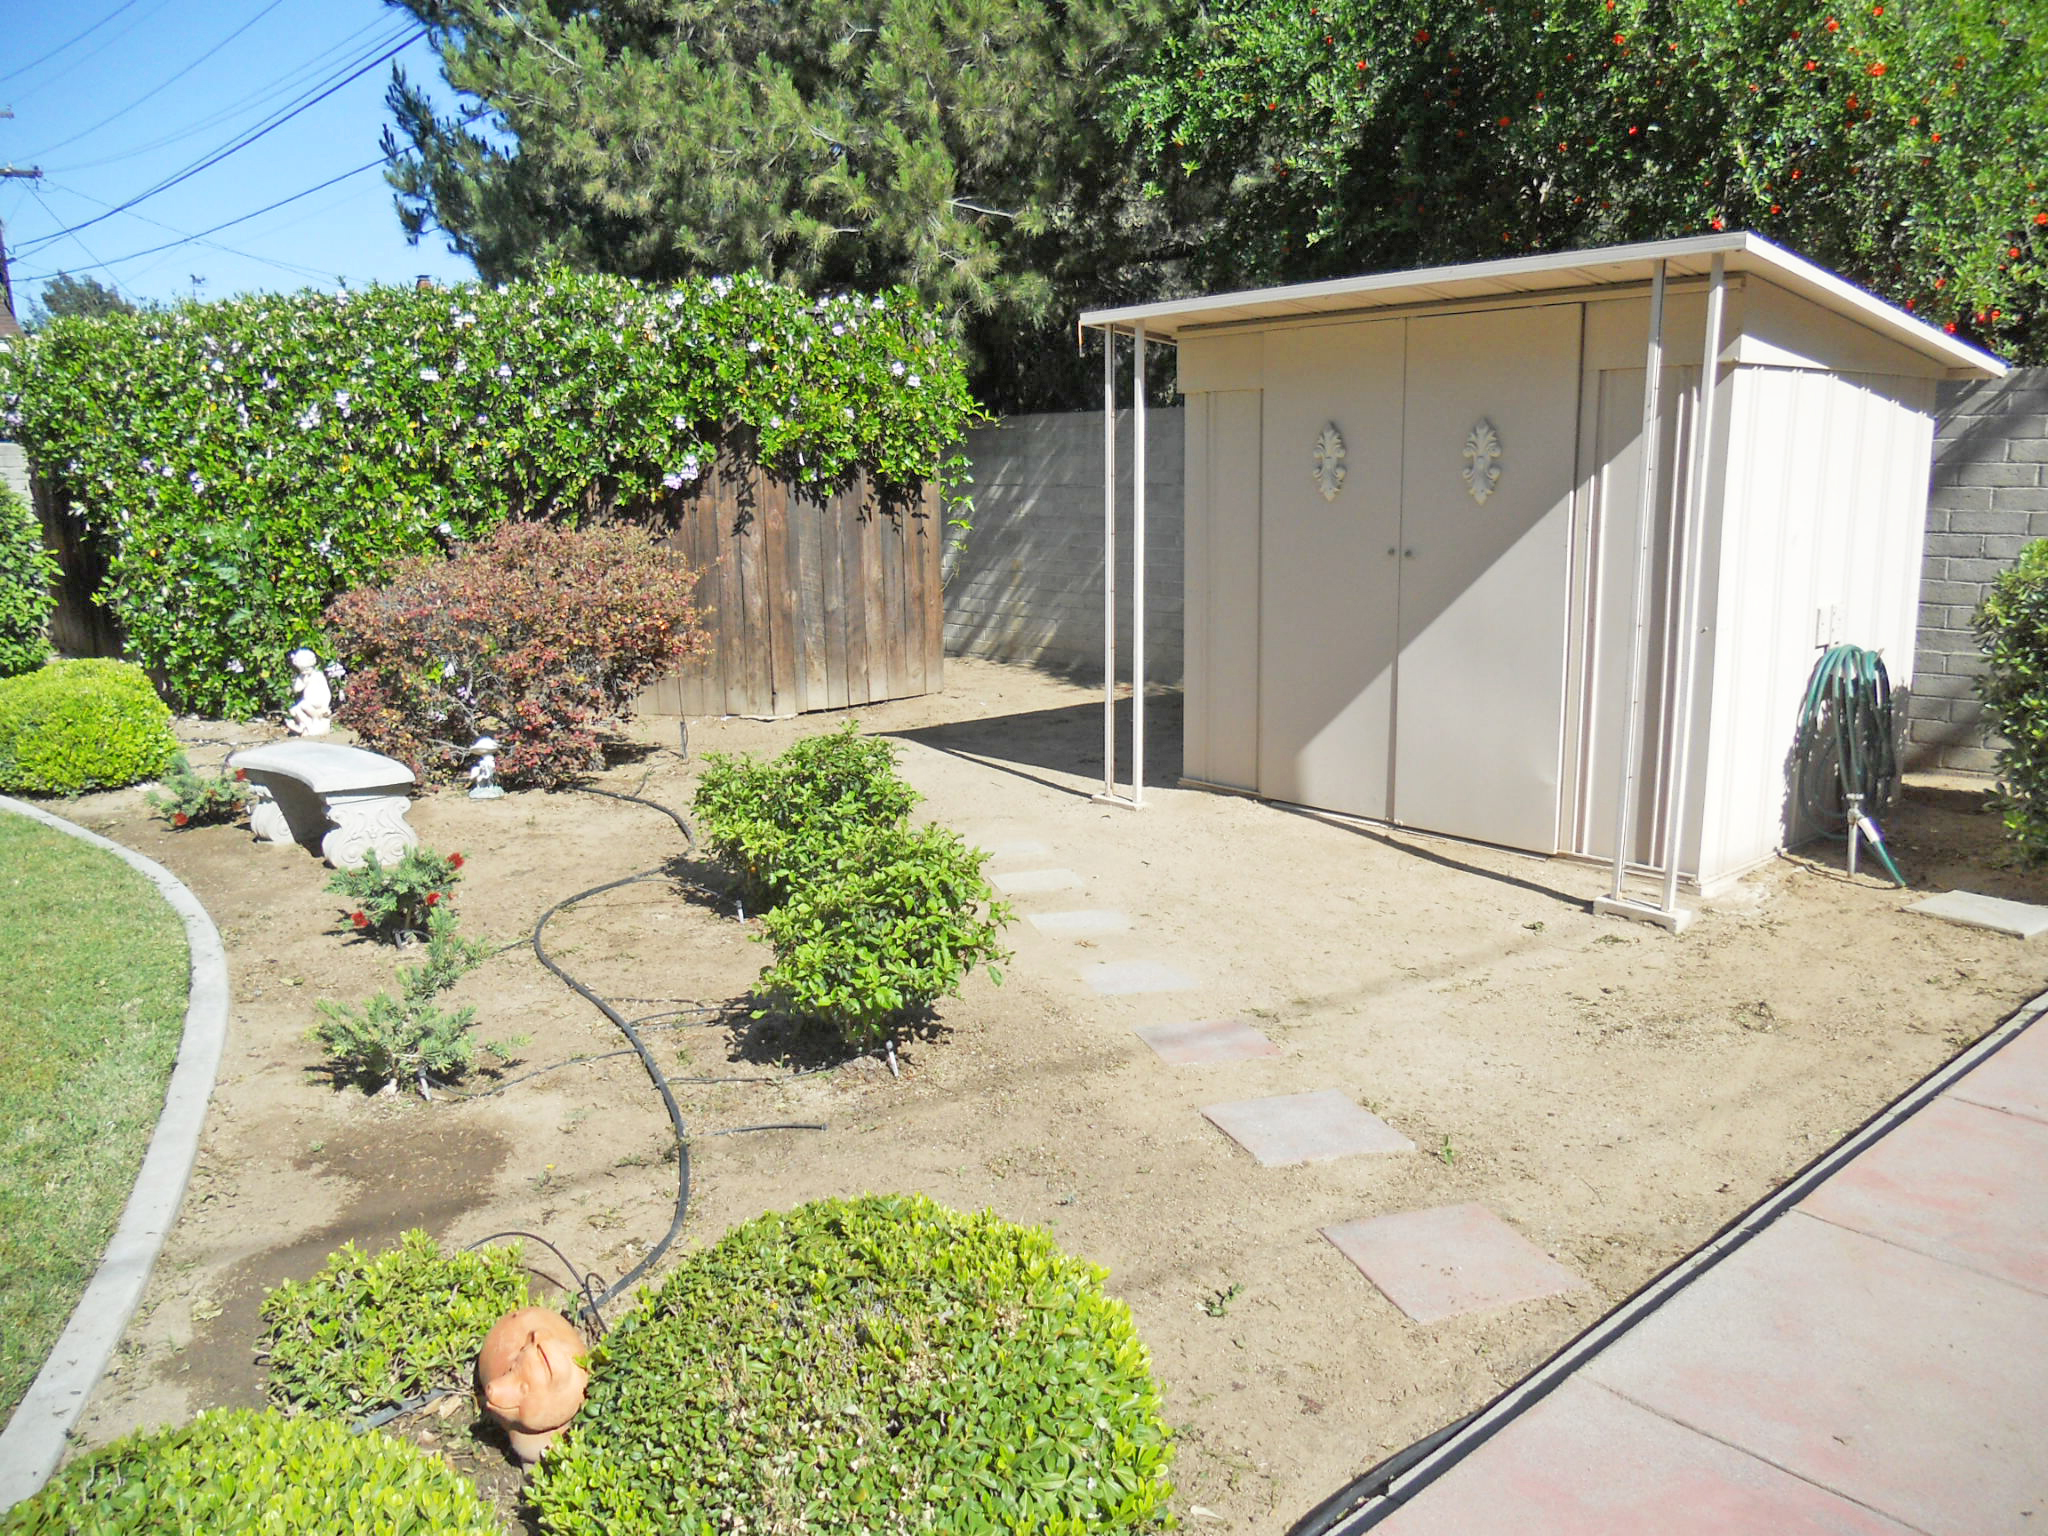 Look how manicured this yard is! Behind the fence with greenery is a huge place to store wood piles, seasonal lawn furniture and lawn equipment.